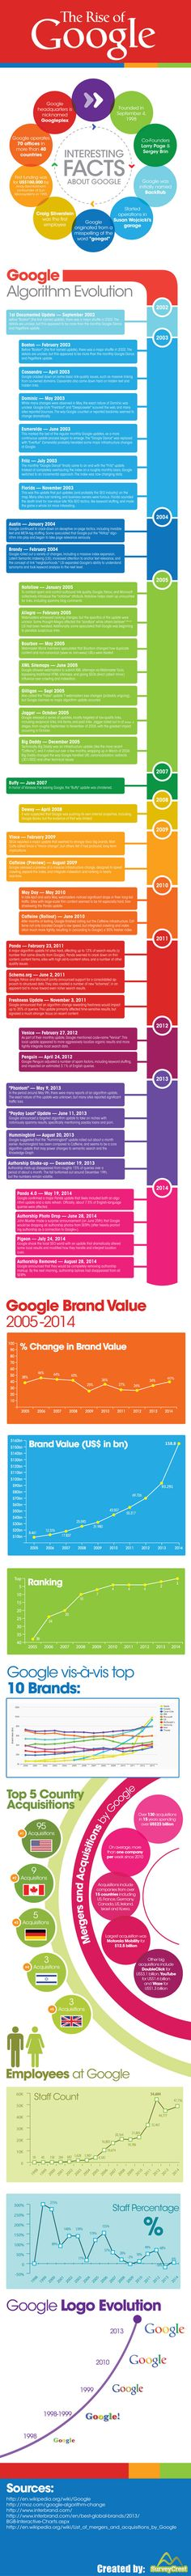 The Rise of Google #infographic #Google #History